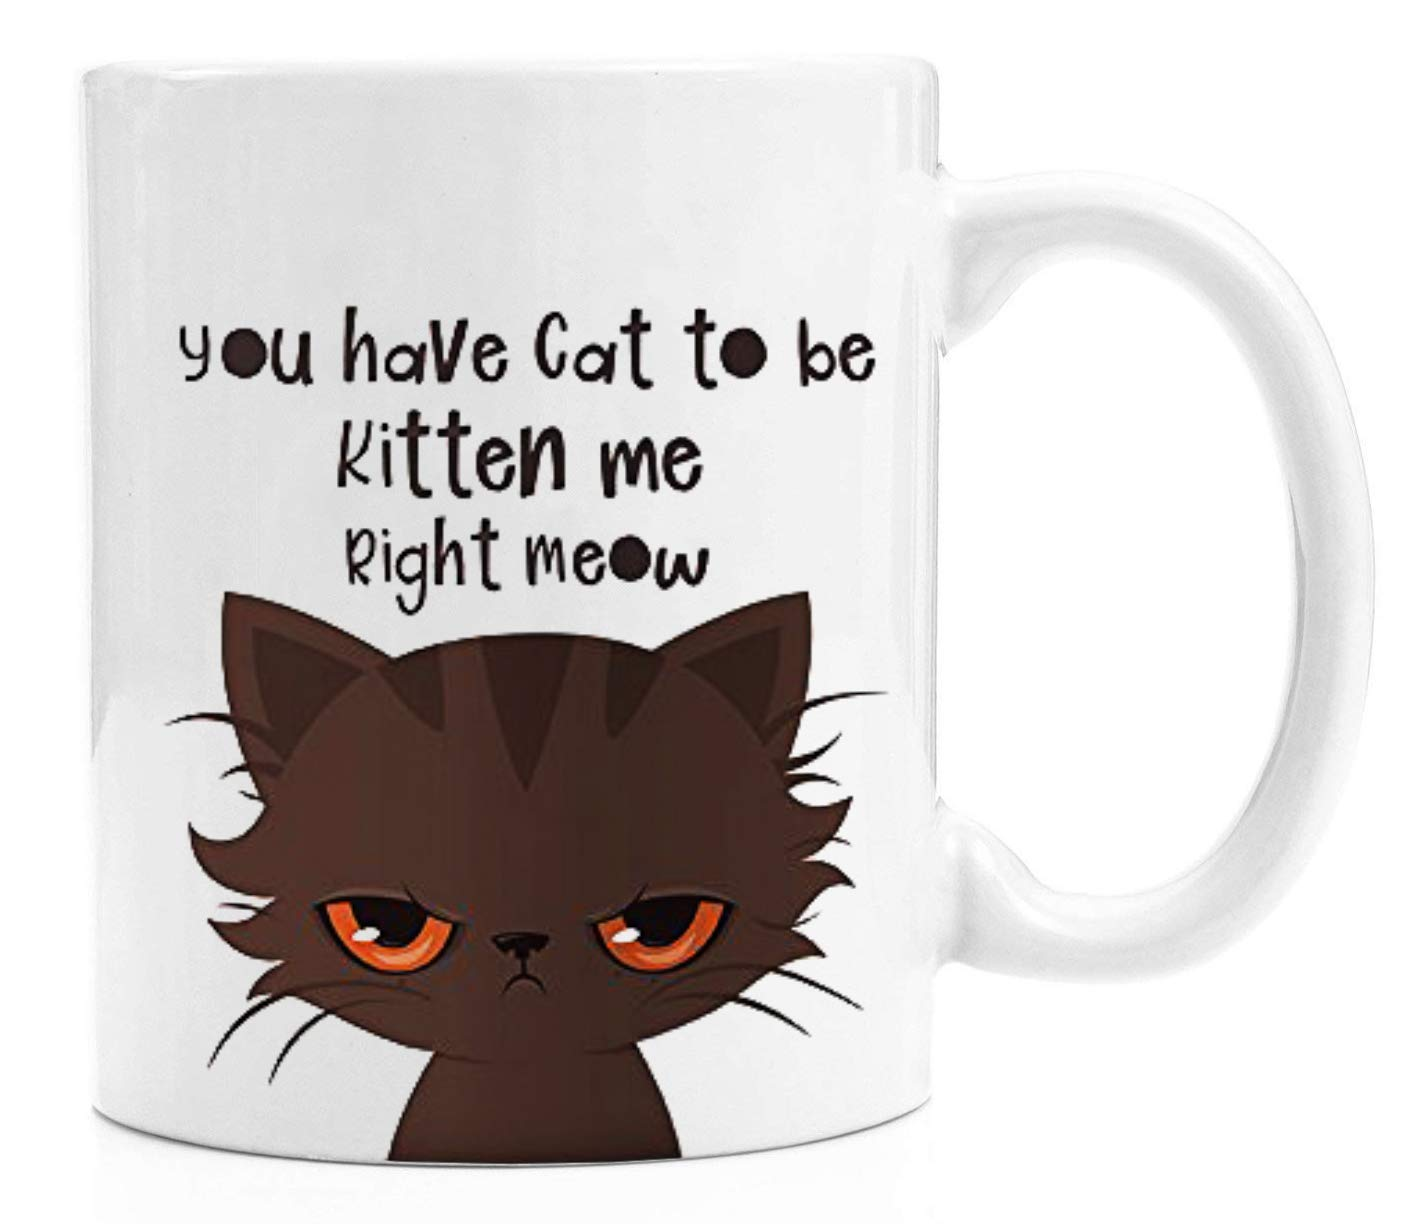 Funny Coffee Mug - You've Cat To Be Kitten Me Right Meow - 11 Oz White Ceramic Glossy Mug With Large C-handle